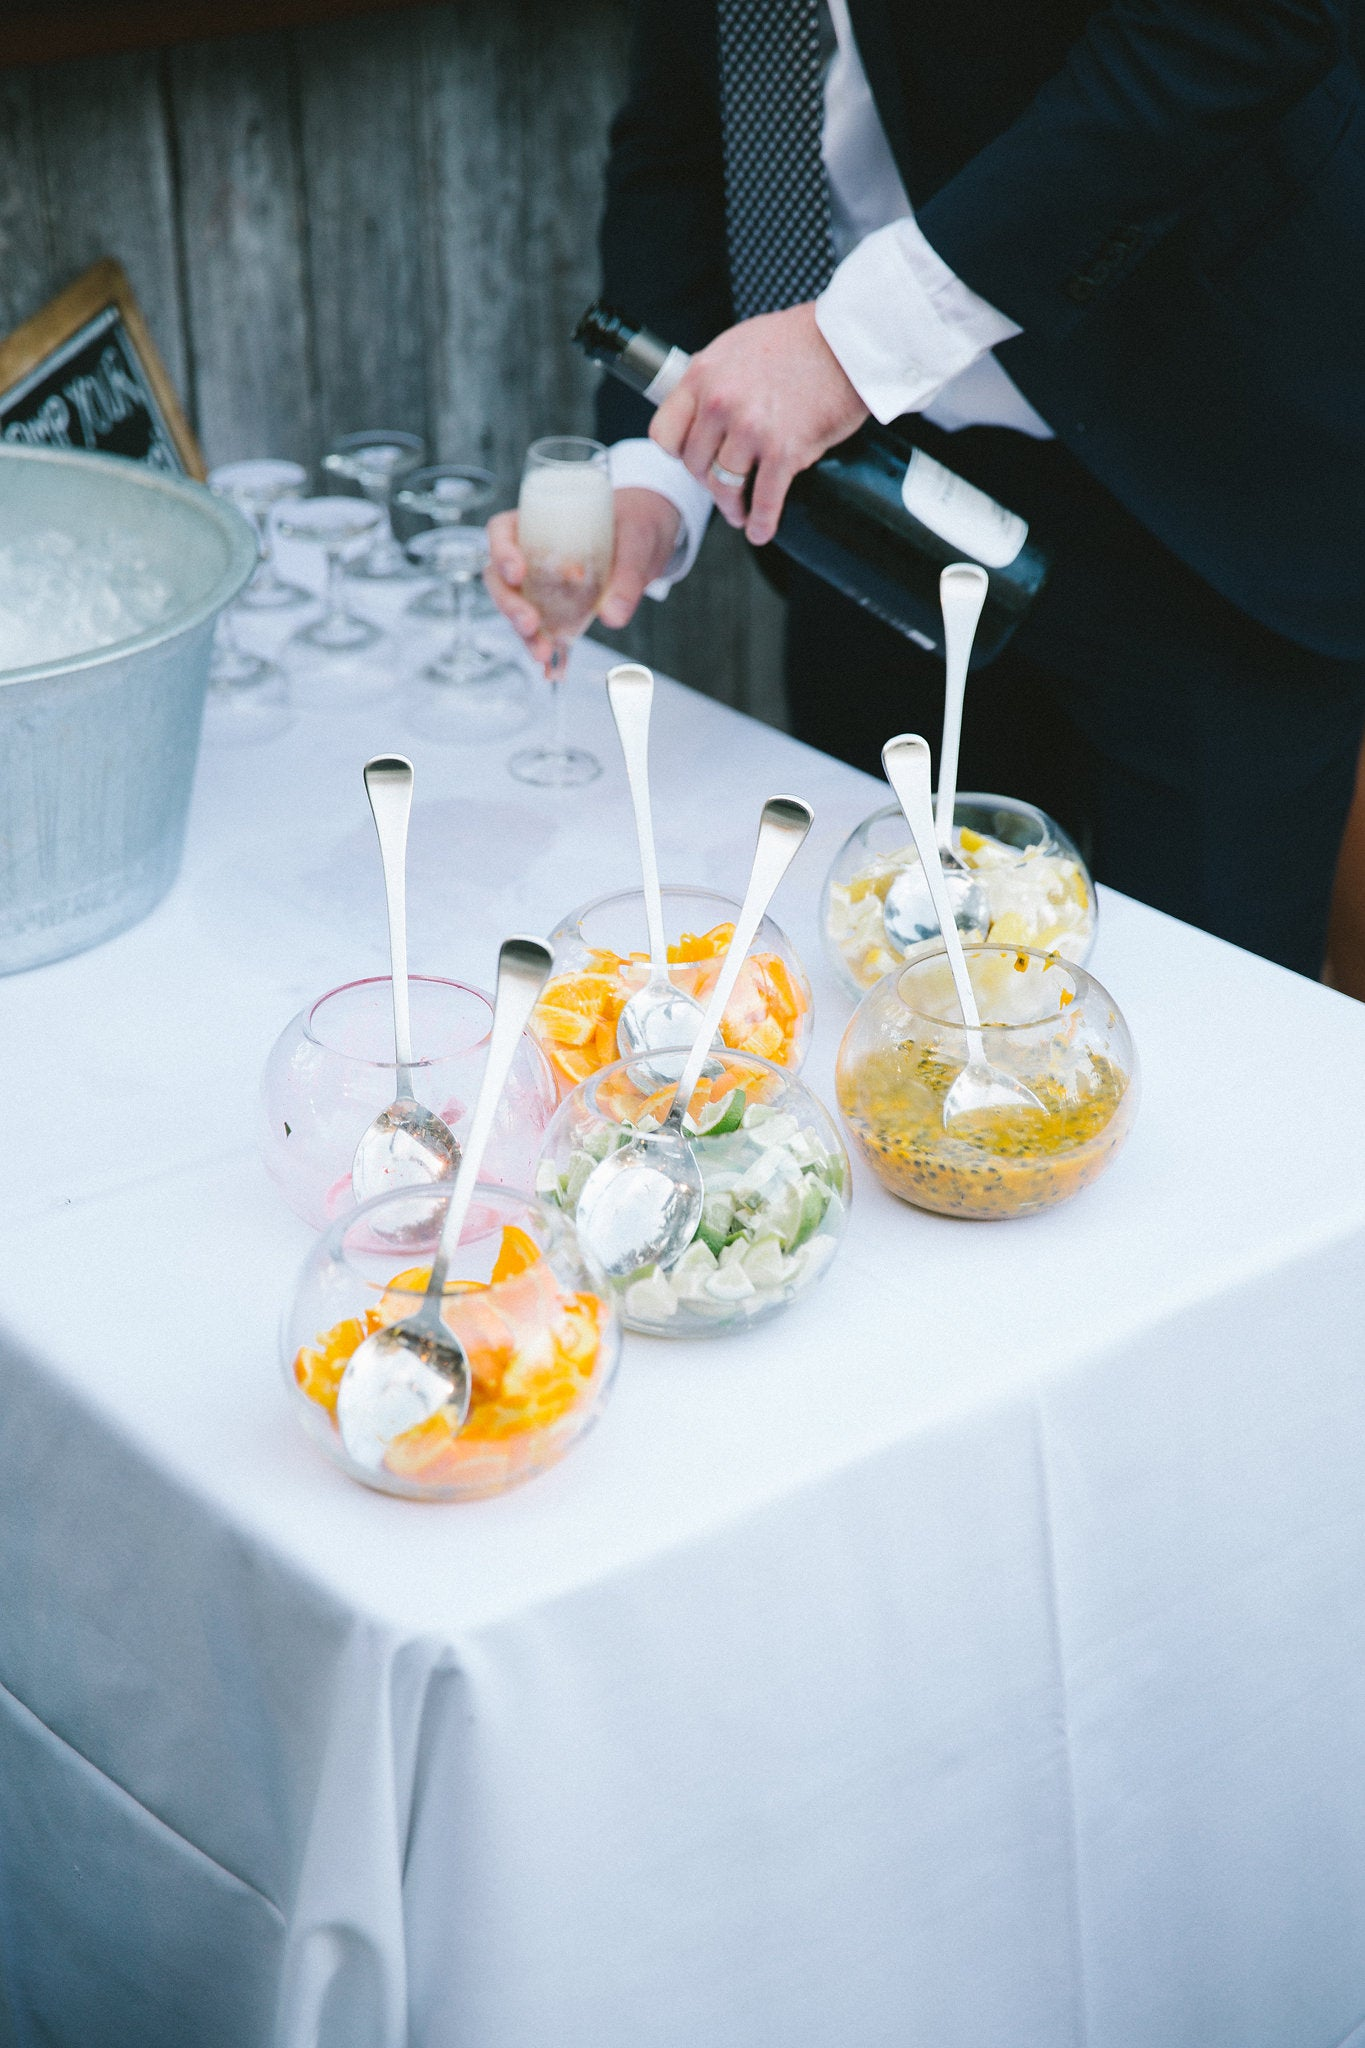 Tastemaker: Food Styling For Your Big Day